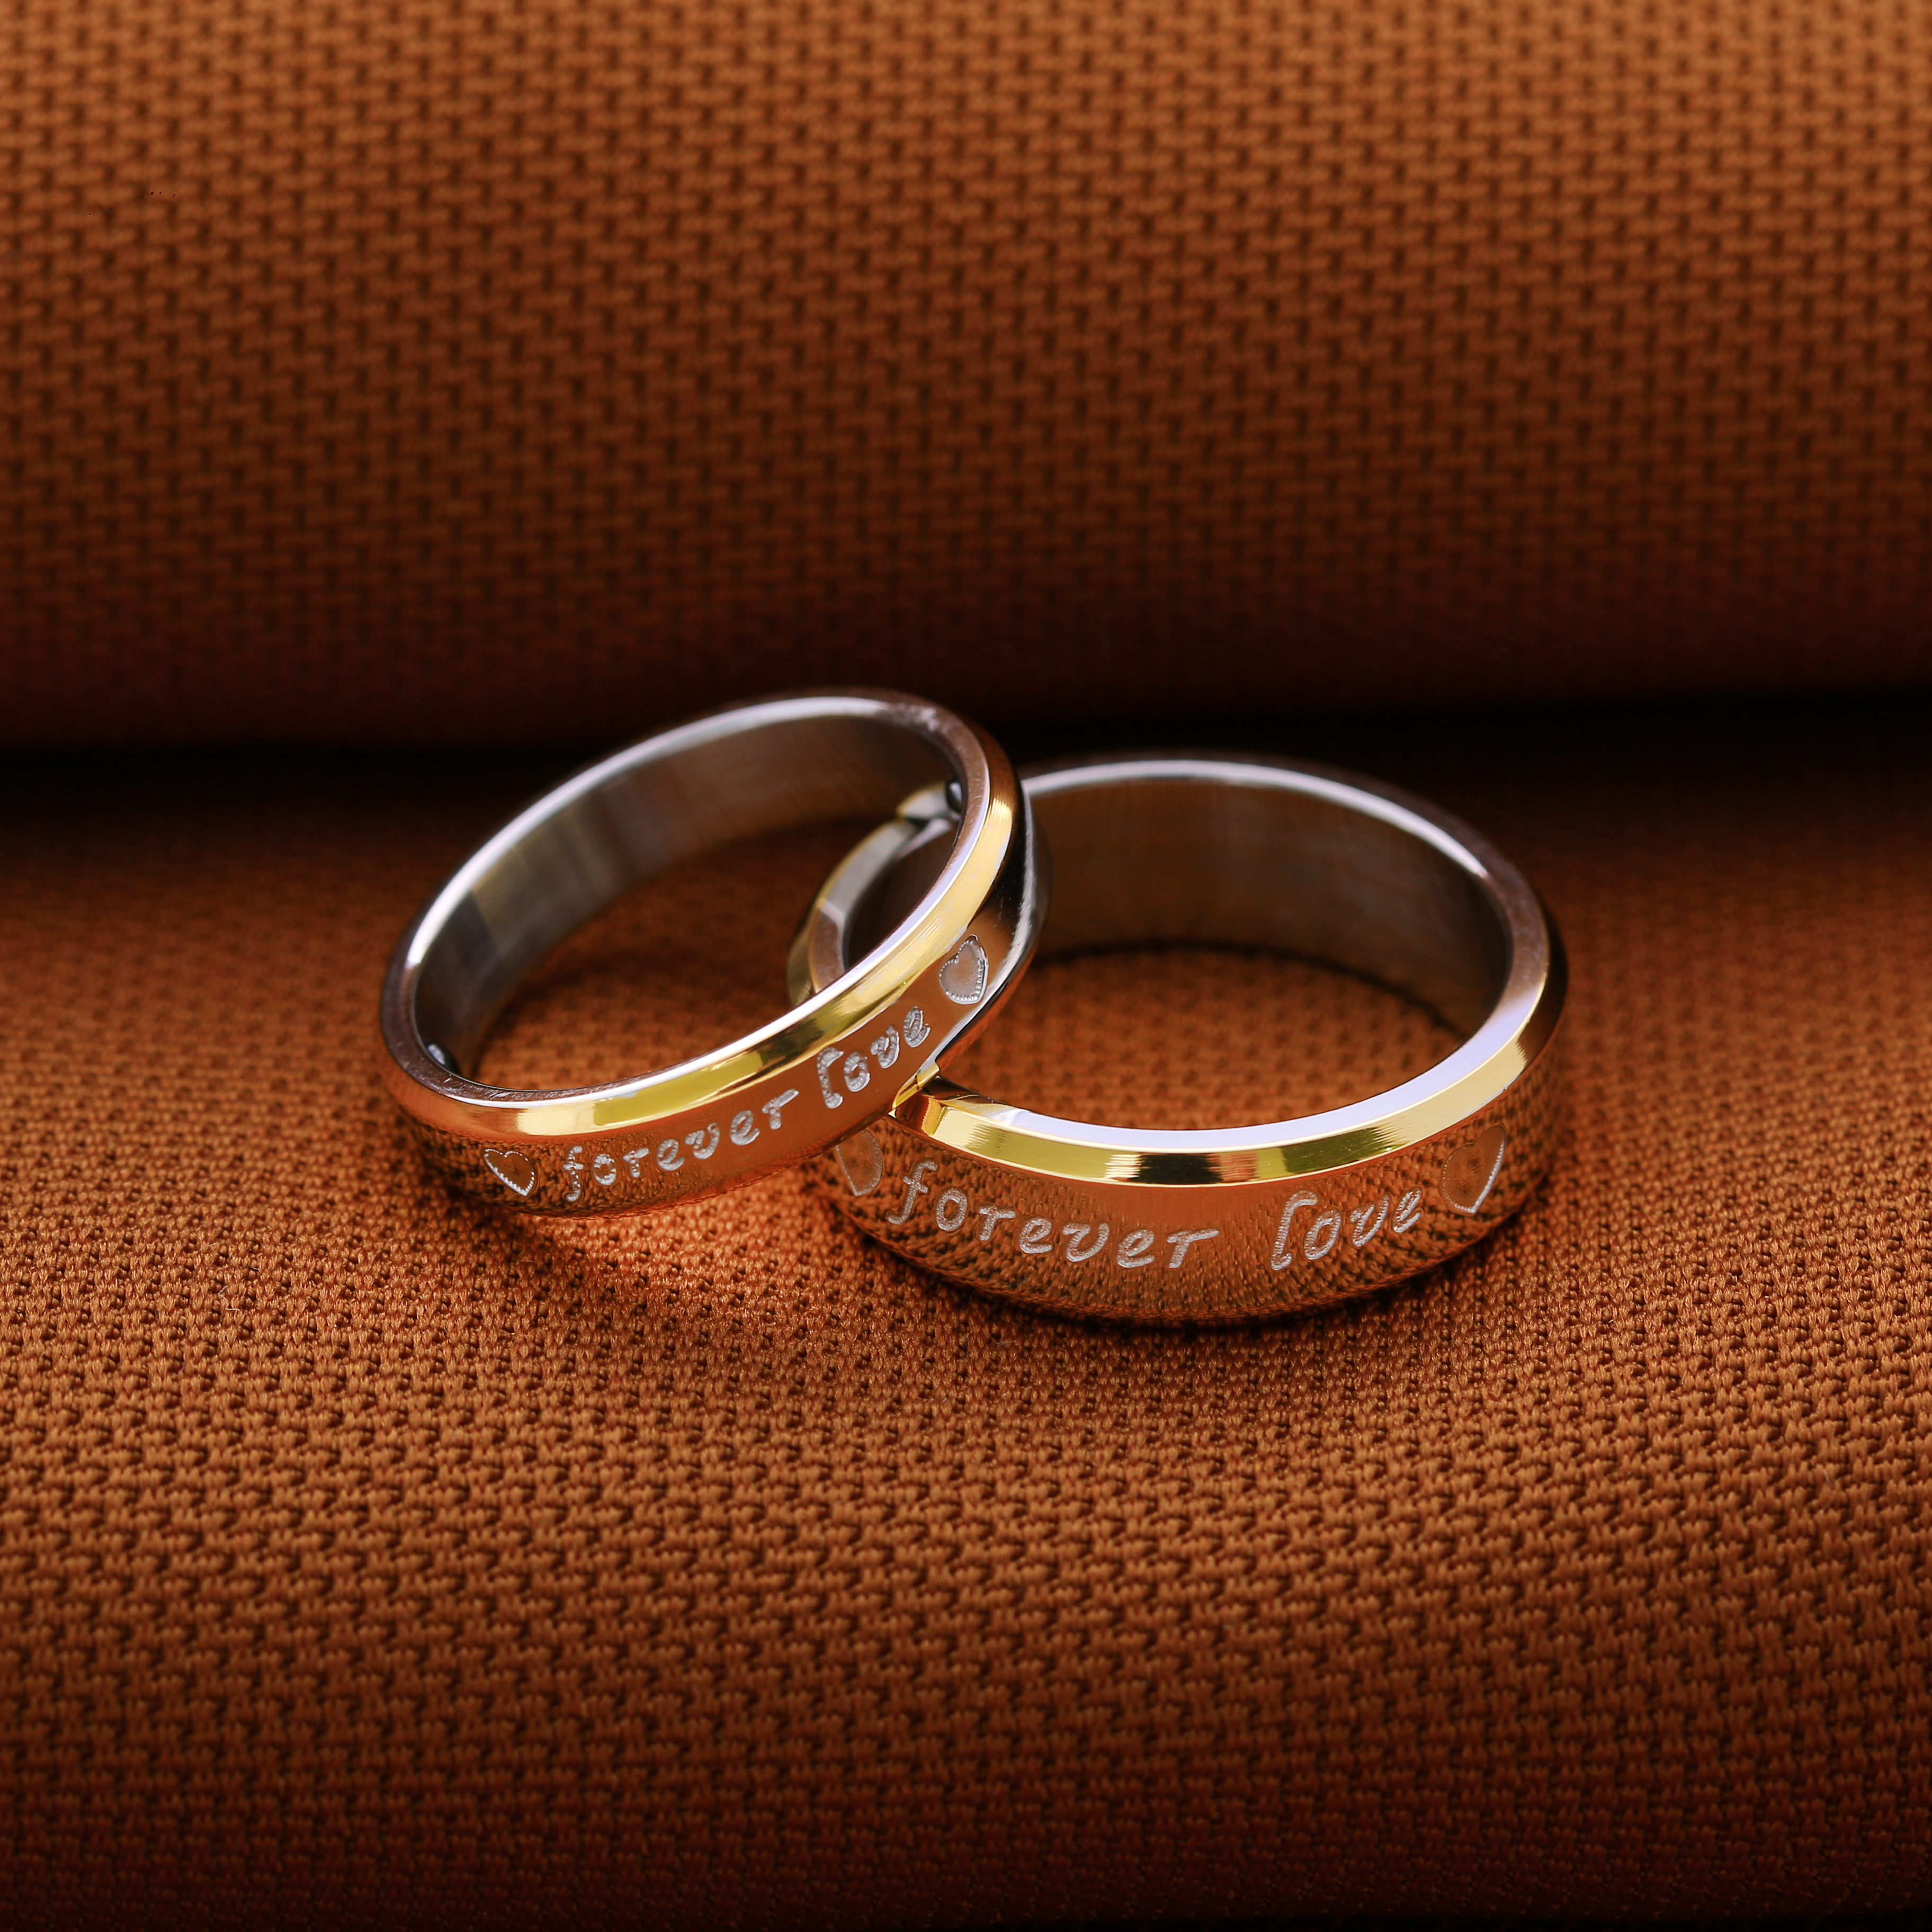 85d4c2eff1f7f Technowise360 - Forever Love 316L Stainless Steel Couple Ring Womens ...